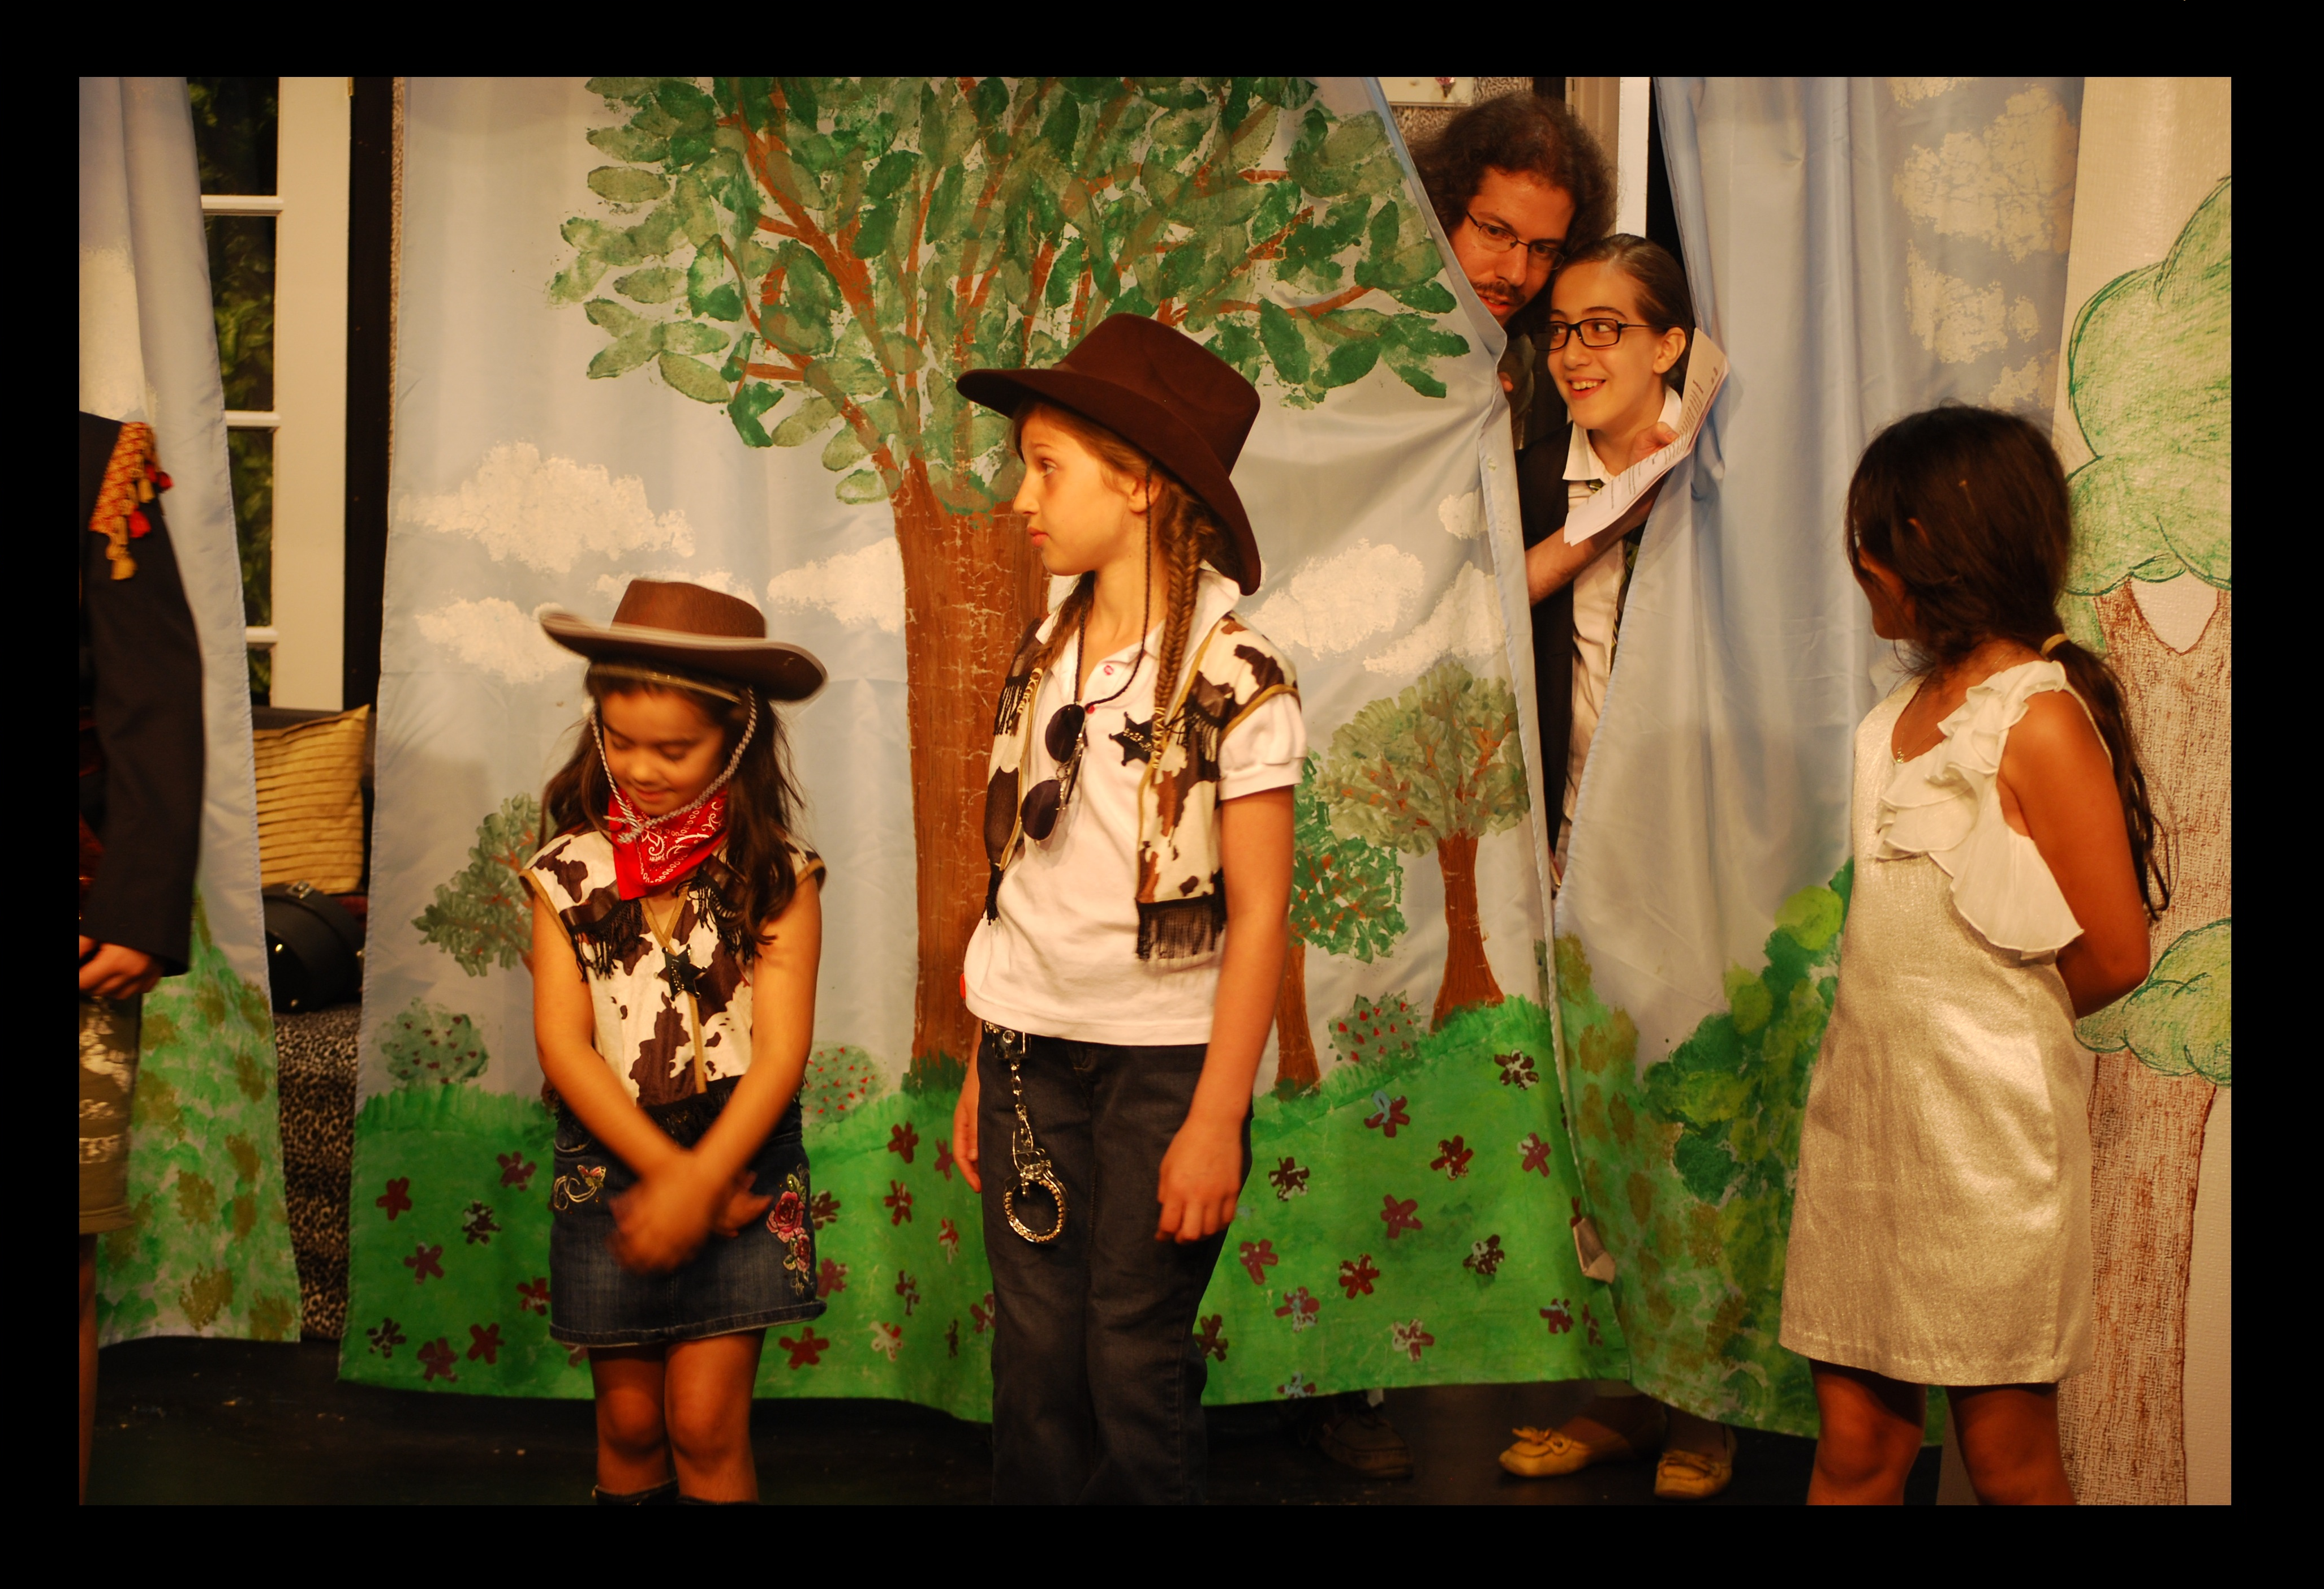 Alex Malaos directing a children's theater play